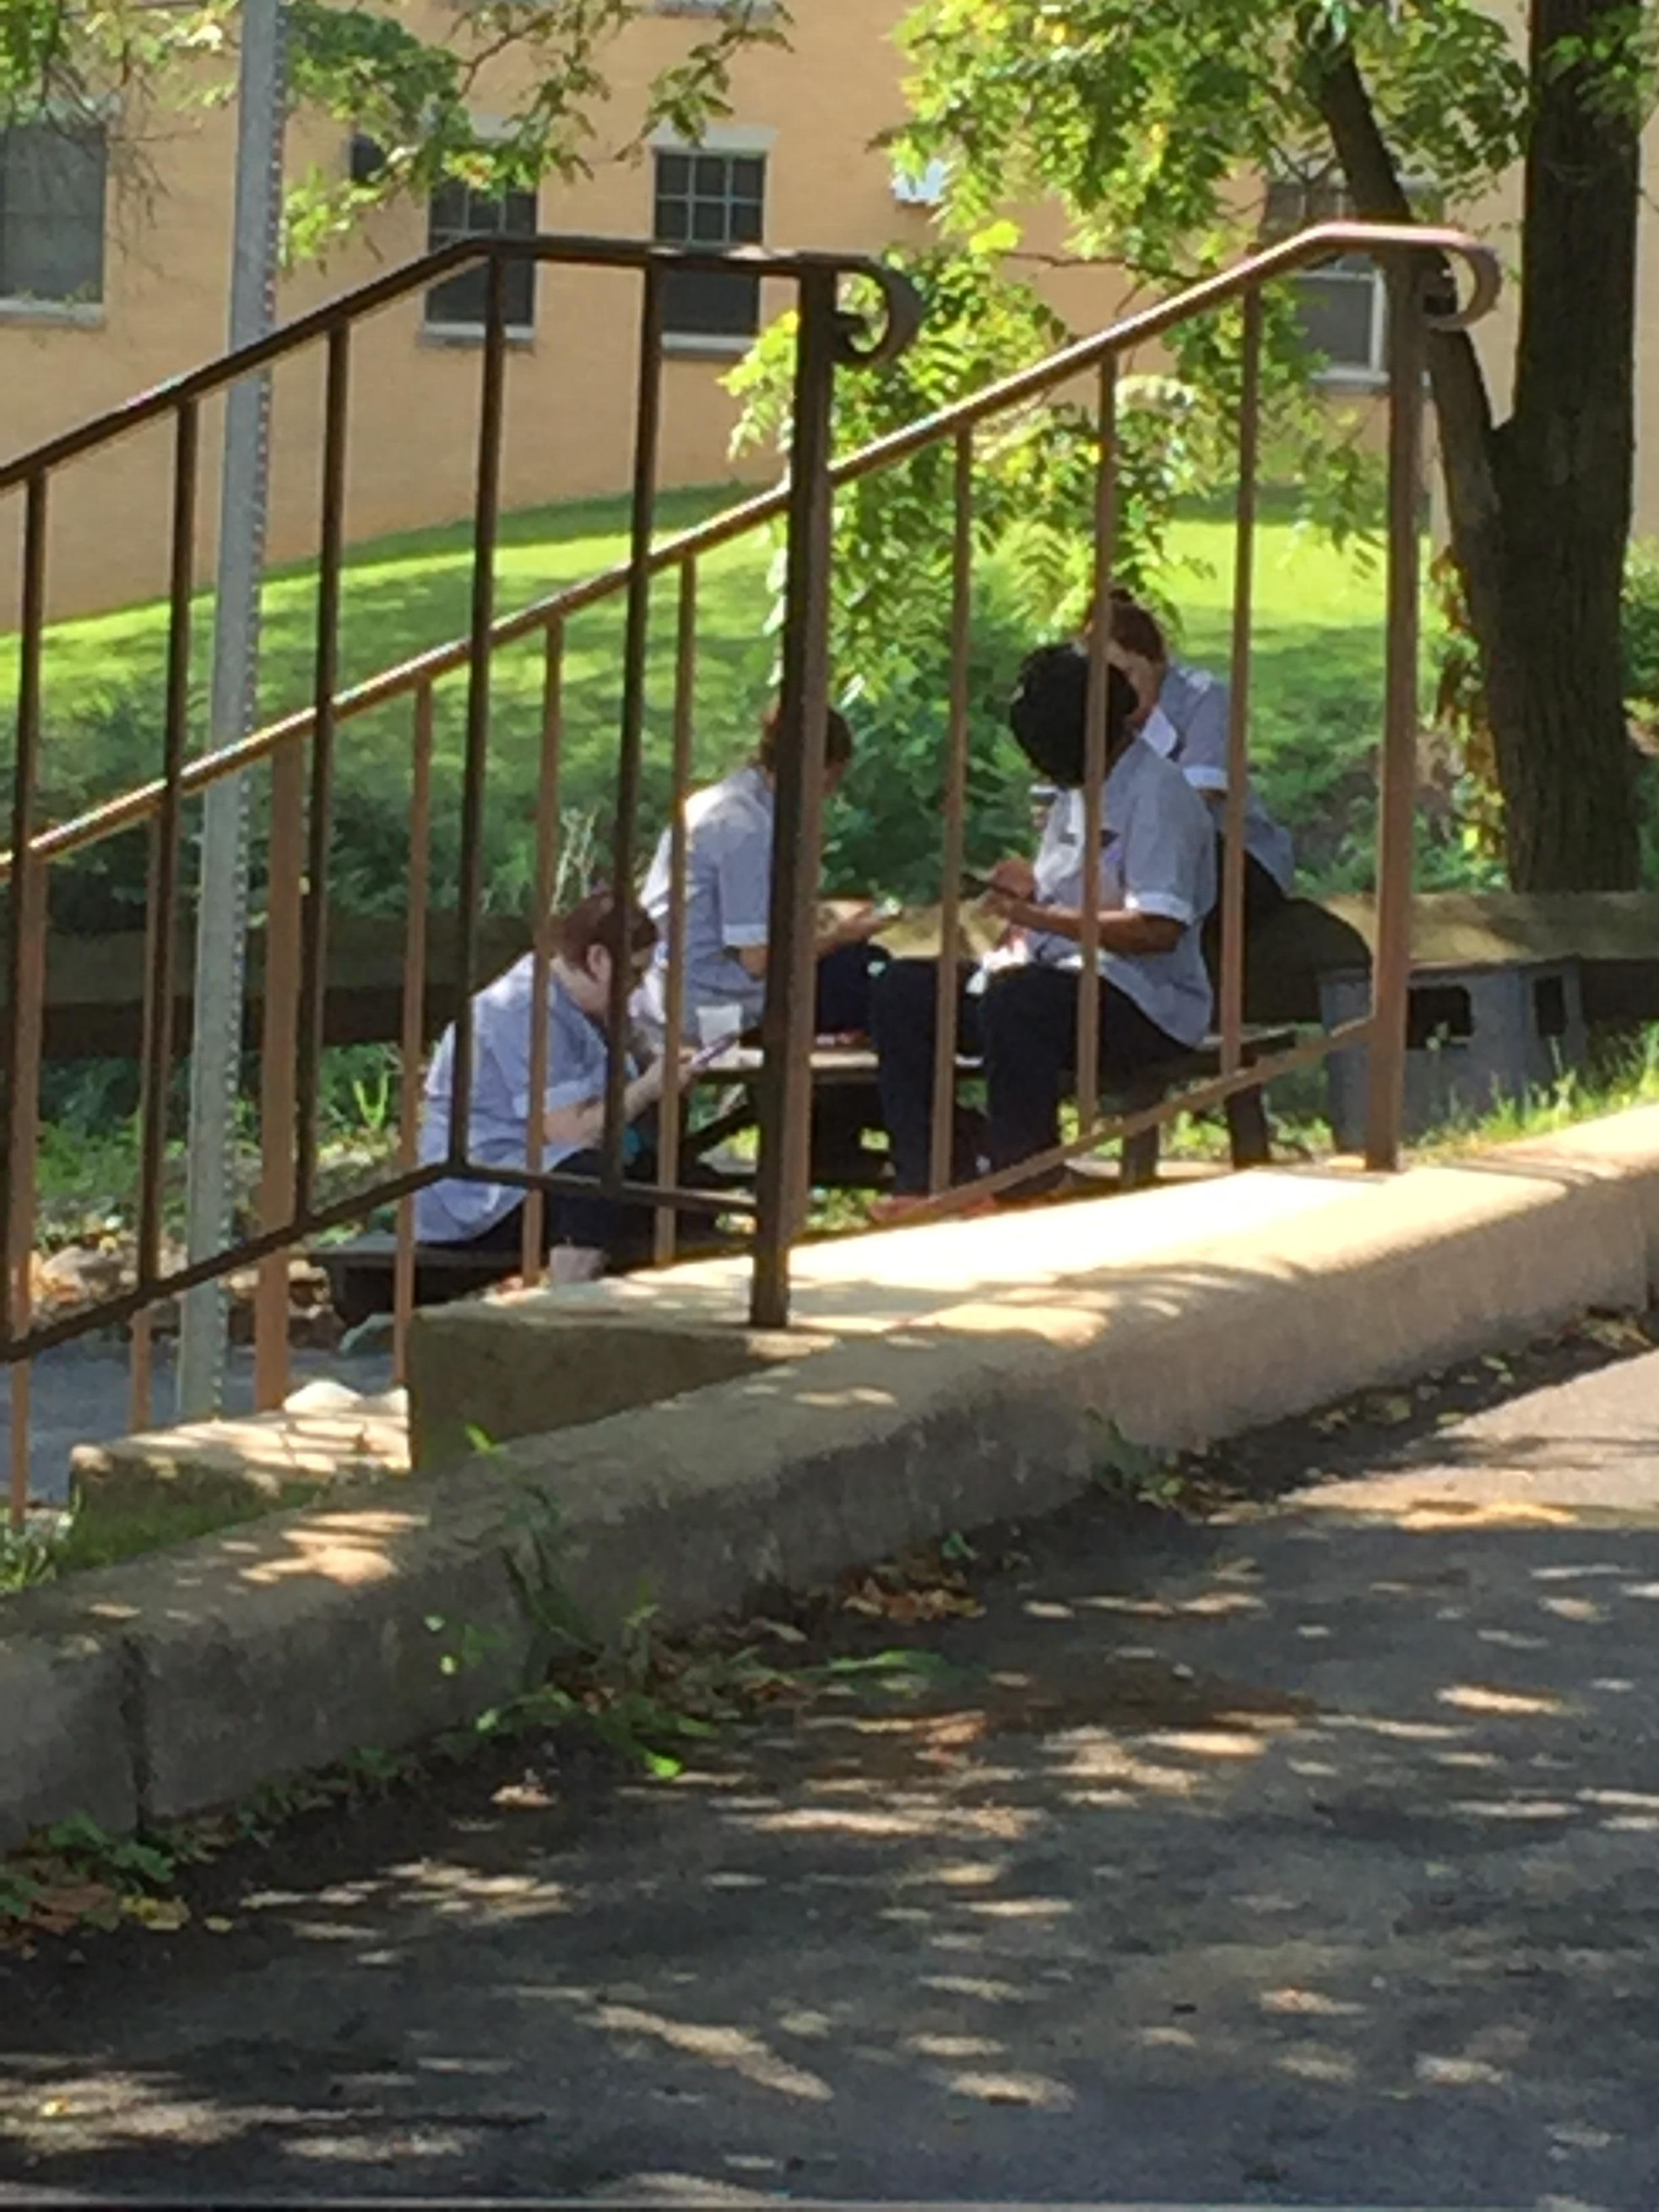 Housekeepers sitting on phones and smoking adjacent to the parking lot.